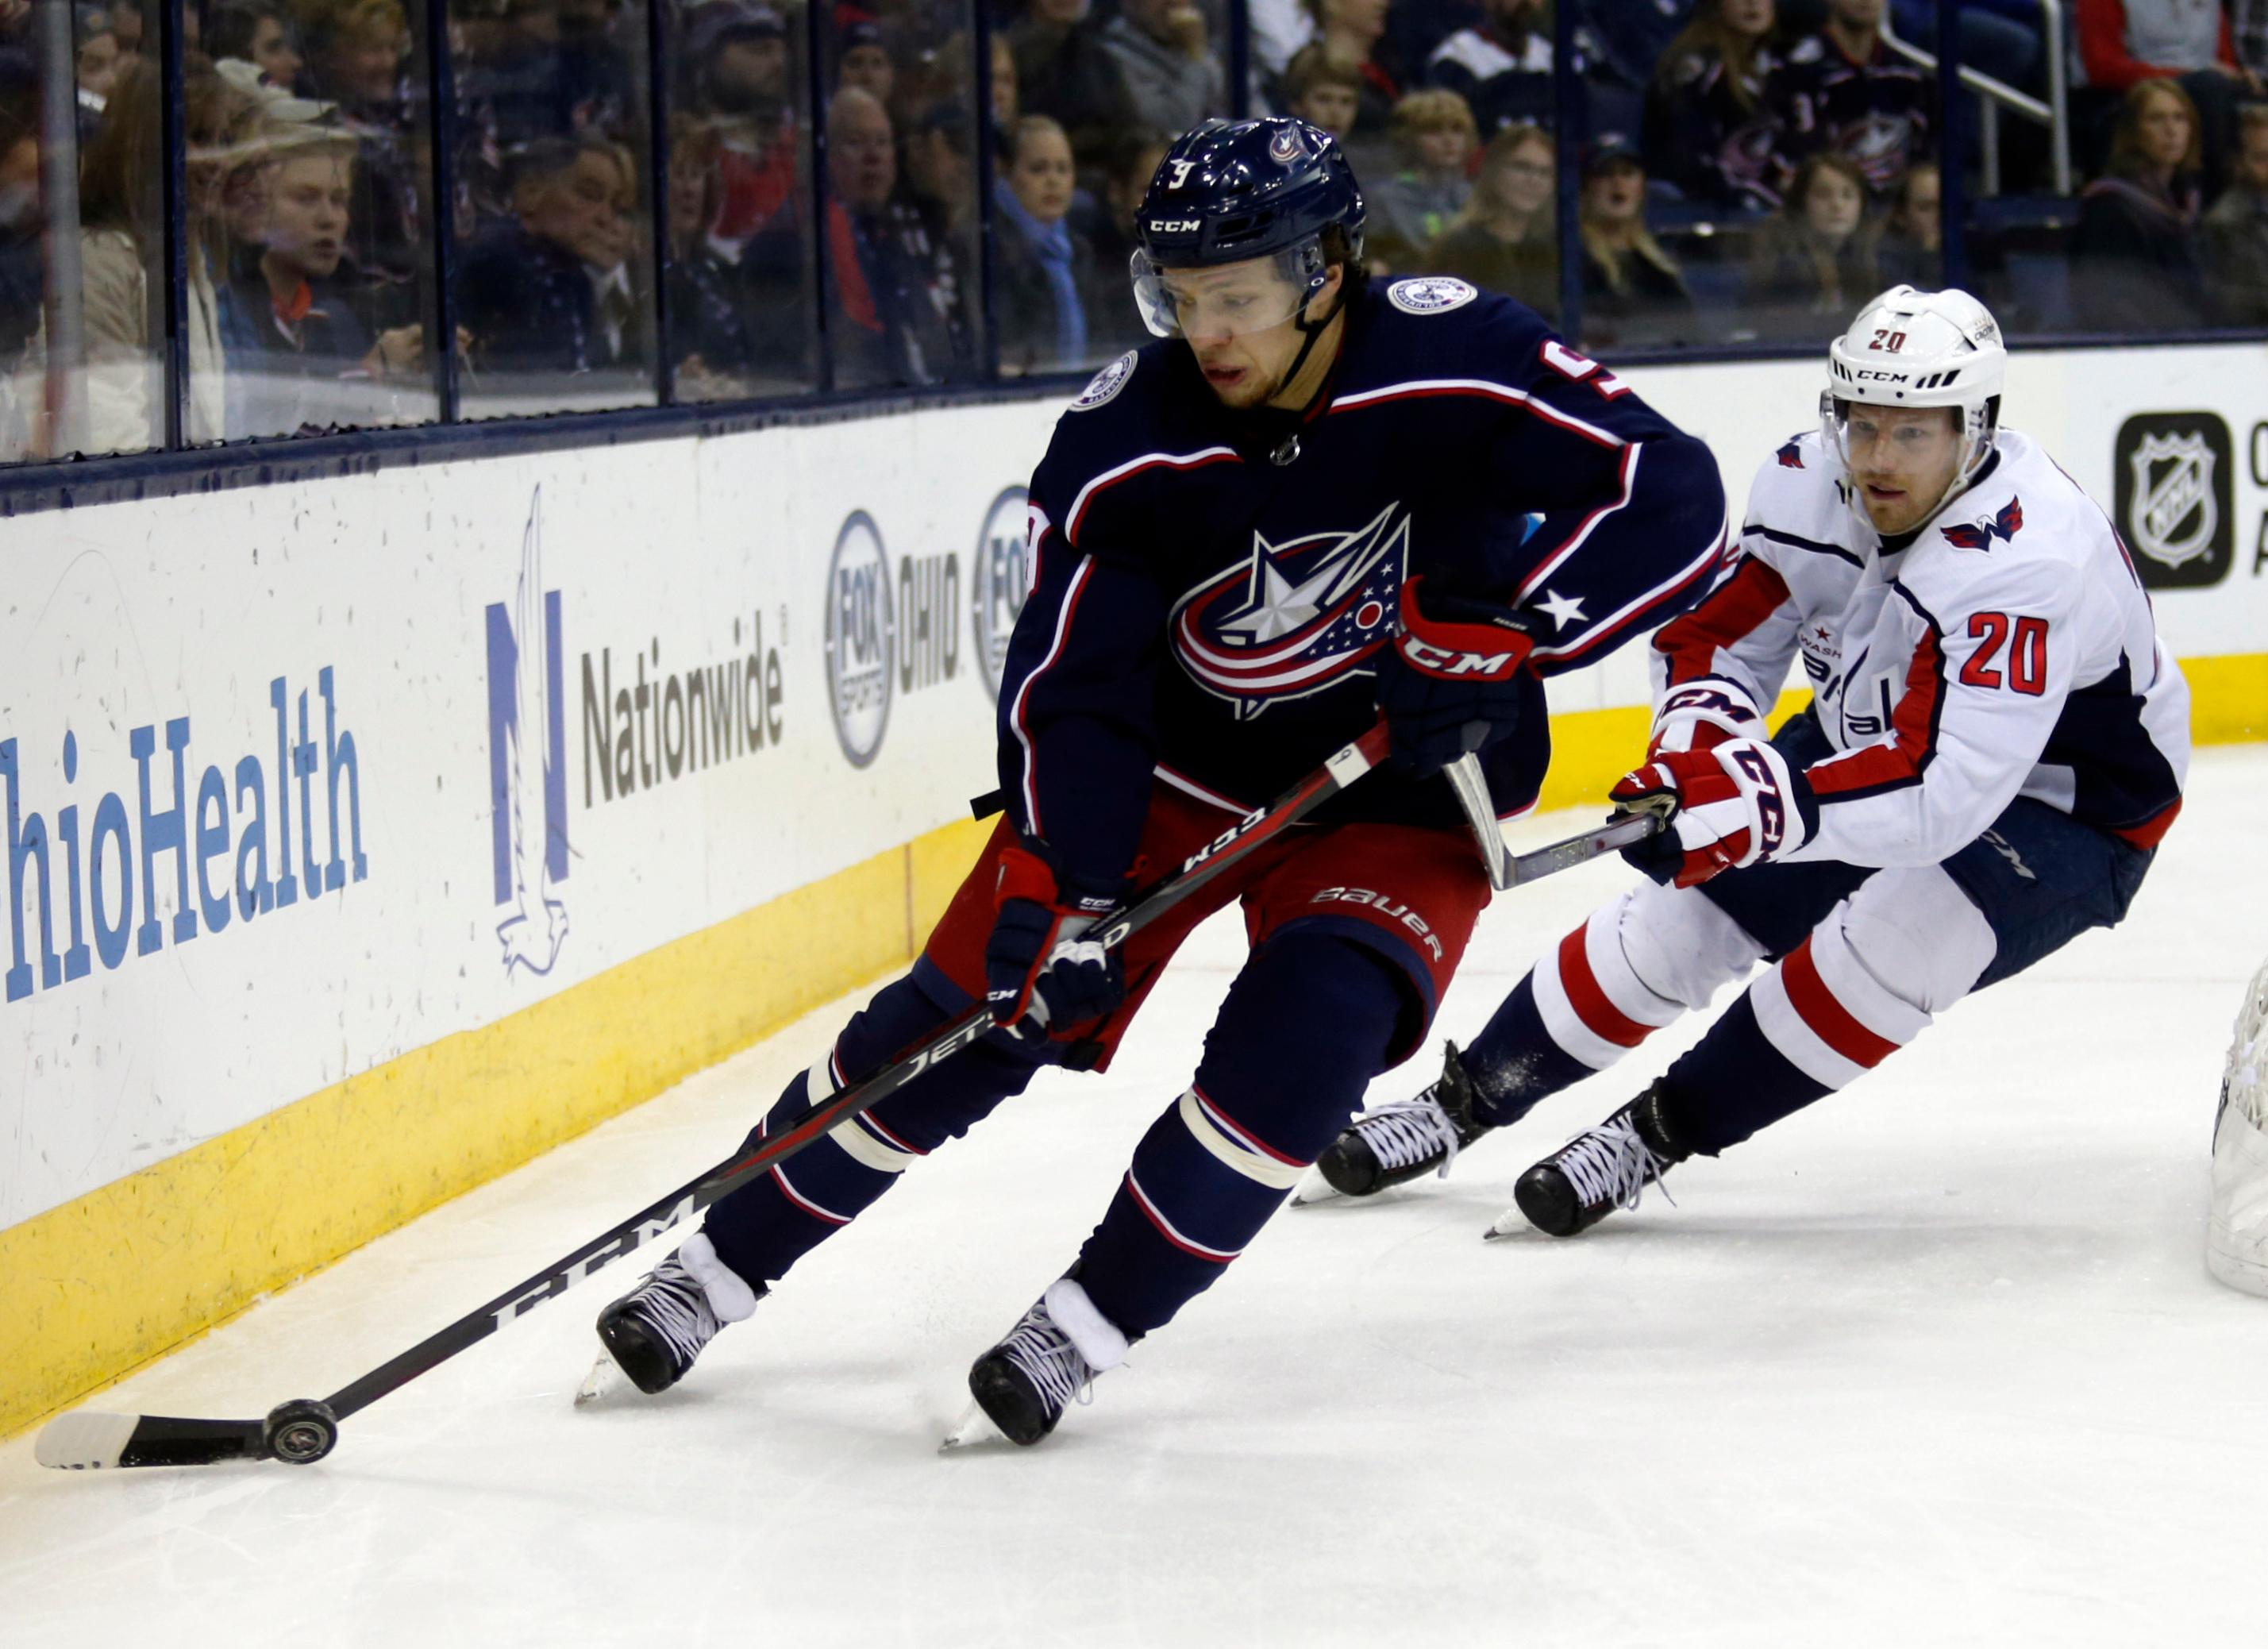 Columbus Blue Jackets forward Artemi Panarin, left, of Russia, controls the puck against Washington Capitals forward Lars Eller, of Denmark, during the first period of an NHL hockey game in Columbus, Ohio, Monday, Feb. 26, 2018. (AP Photo/Paul Vernon)